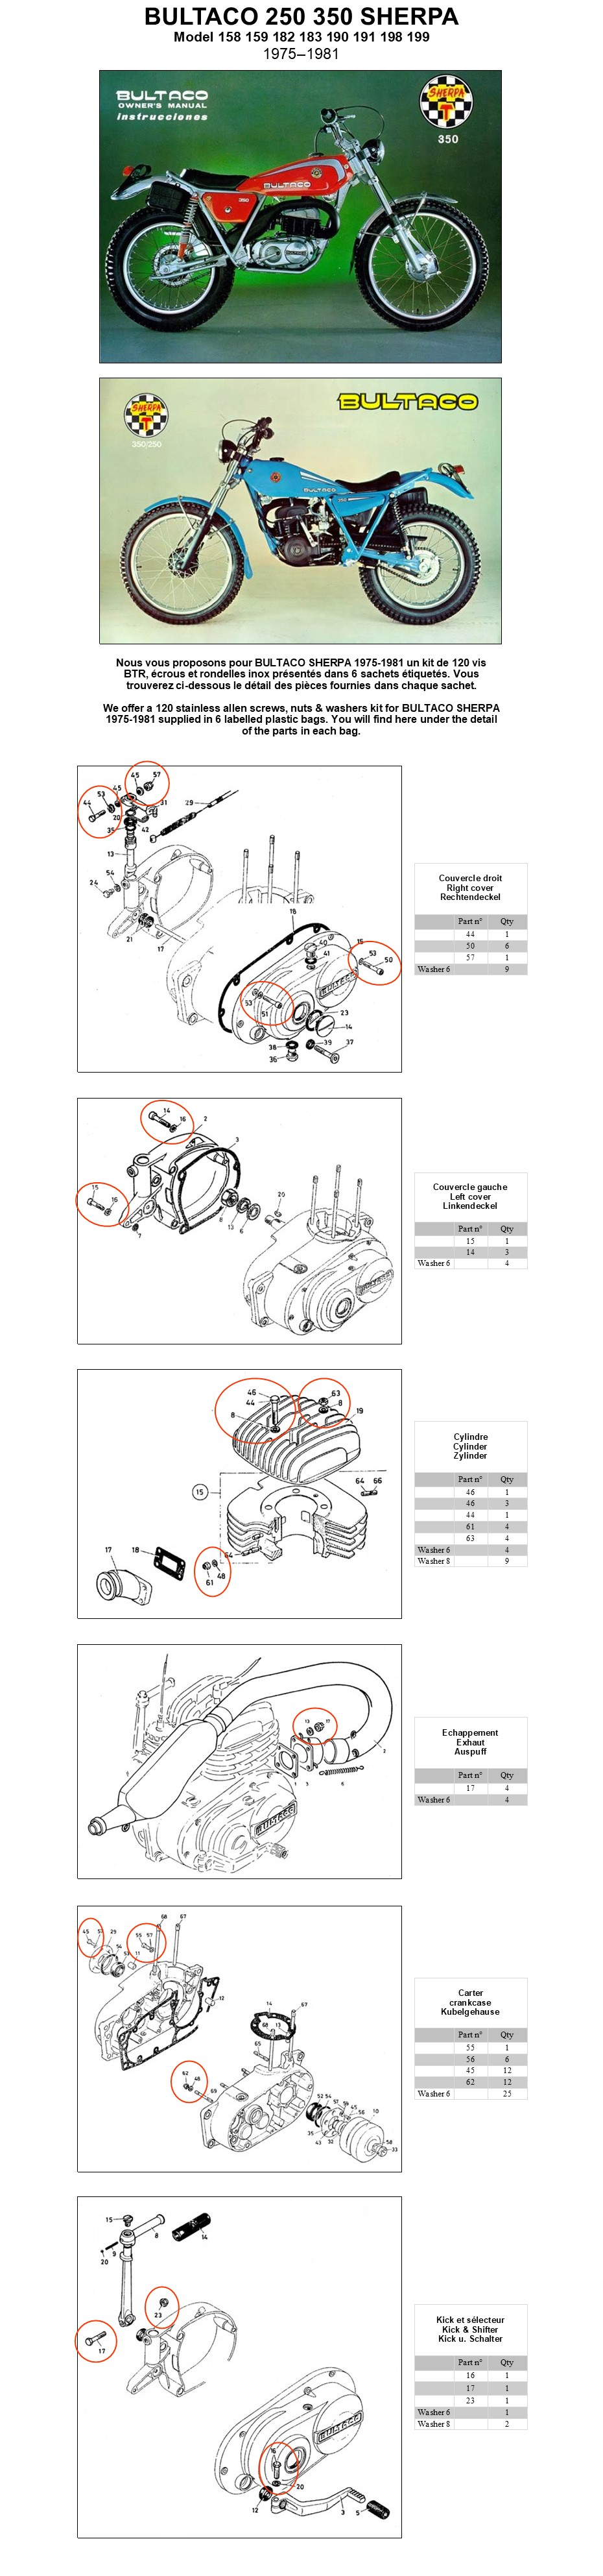 Bultaco Engine Diagram Ignition Wiring Each Kit Is Supplied With An Internet Address Of The Mounting Drawing For Screw